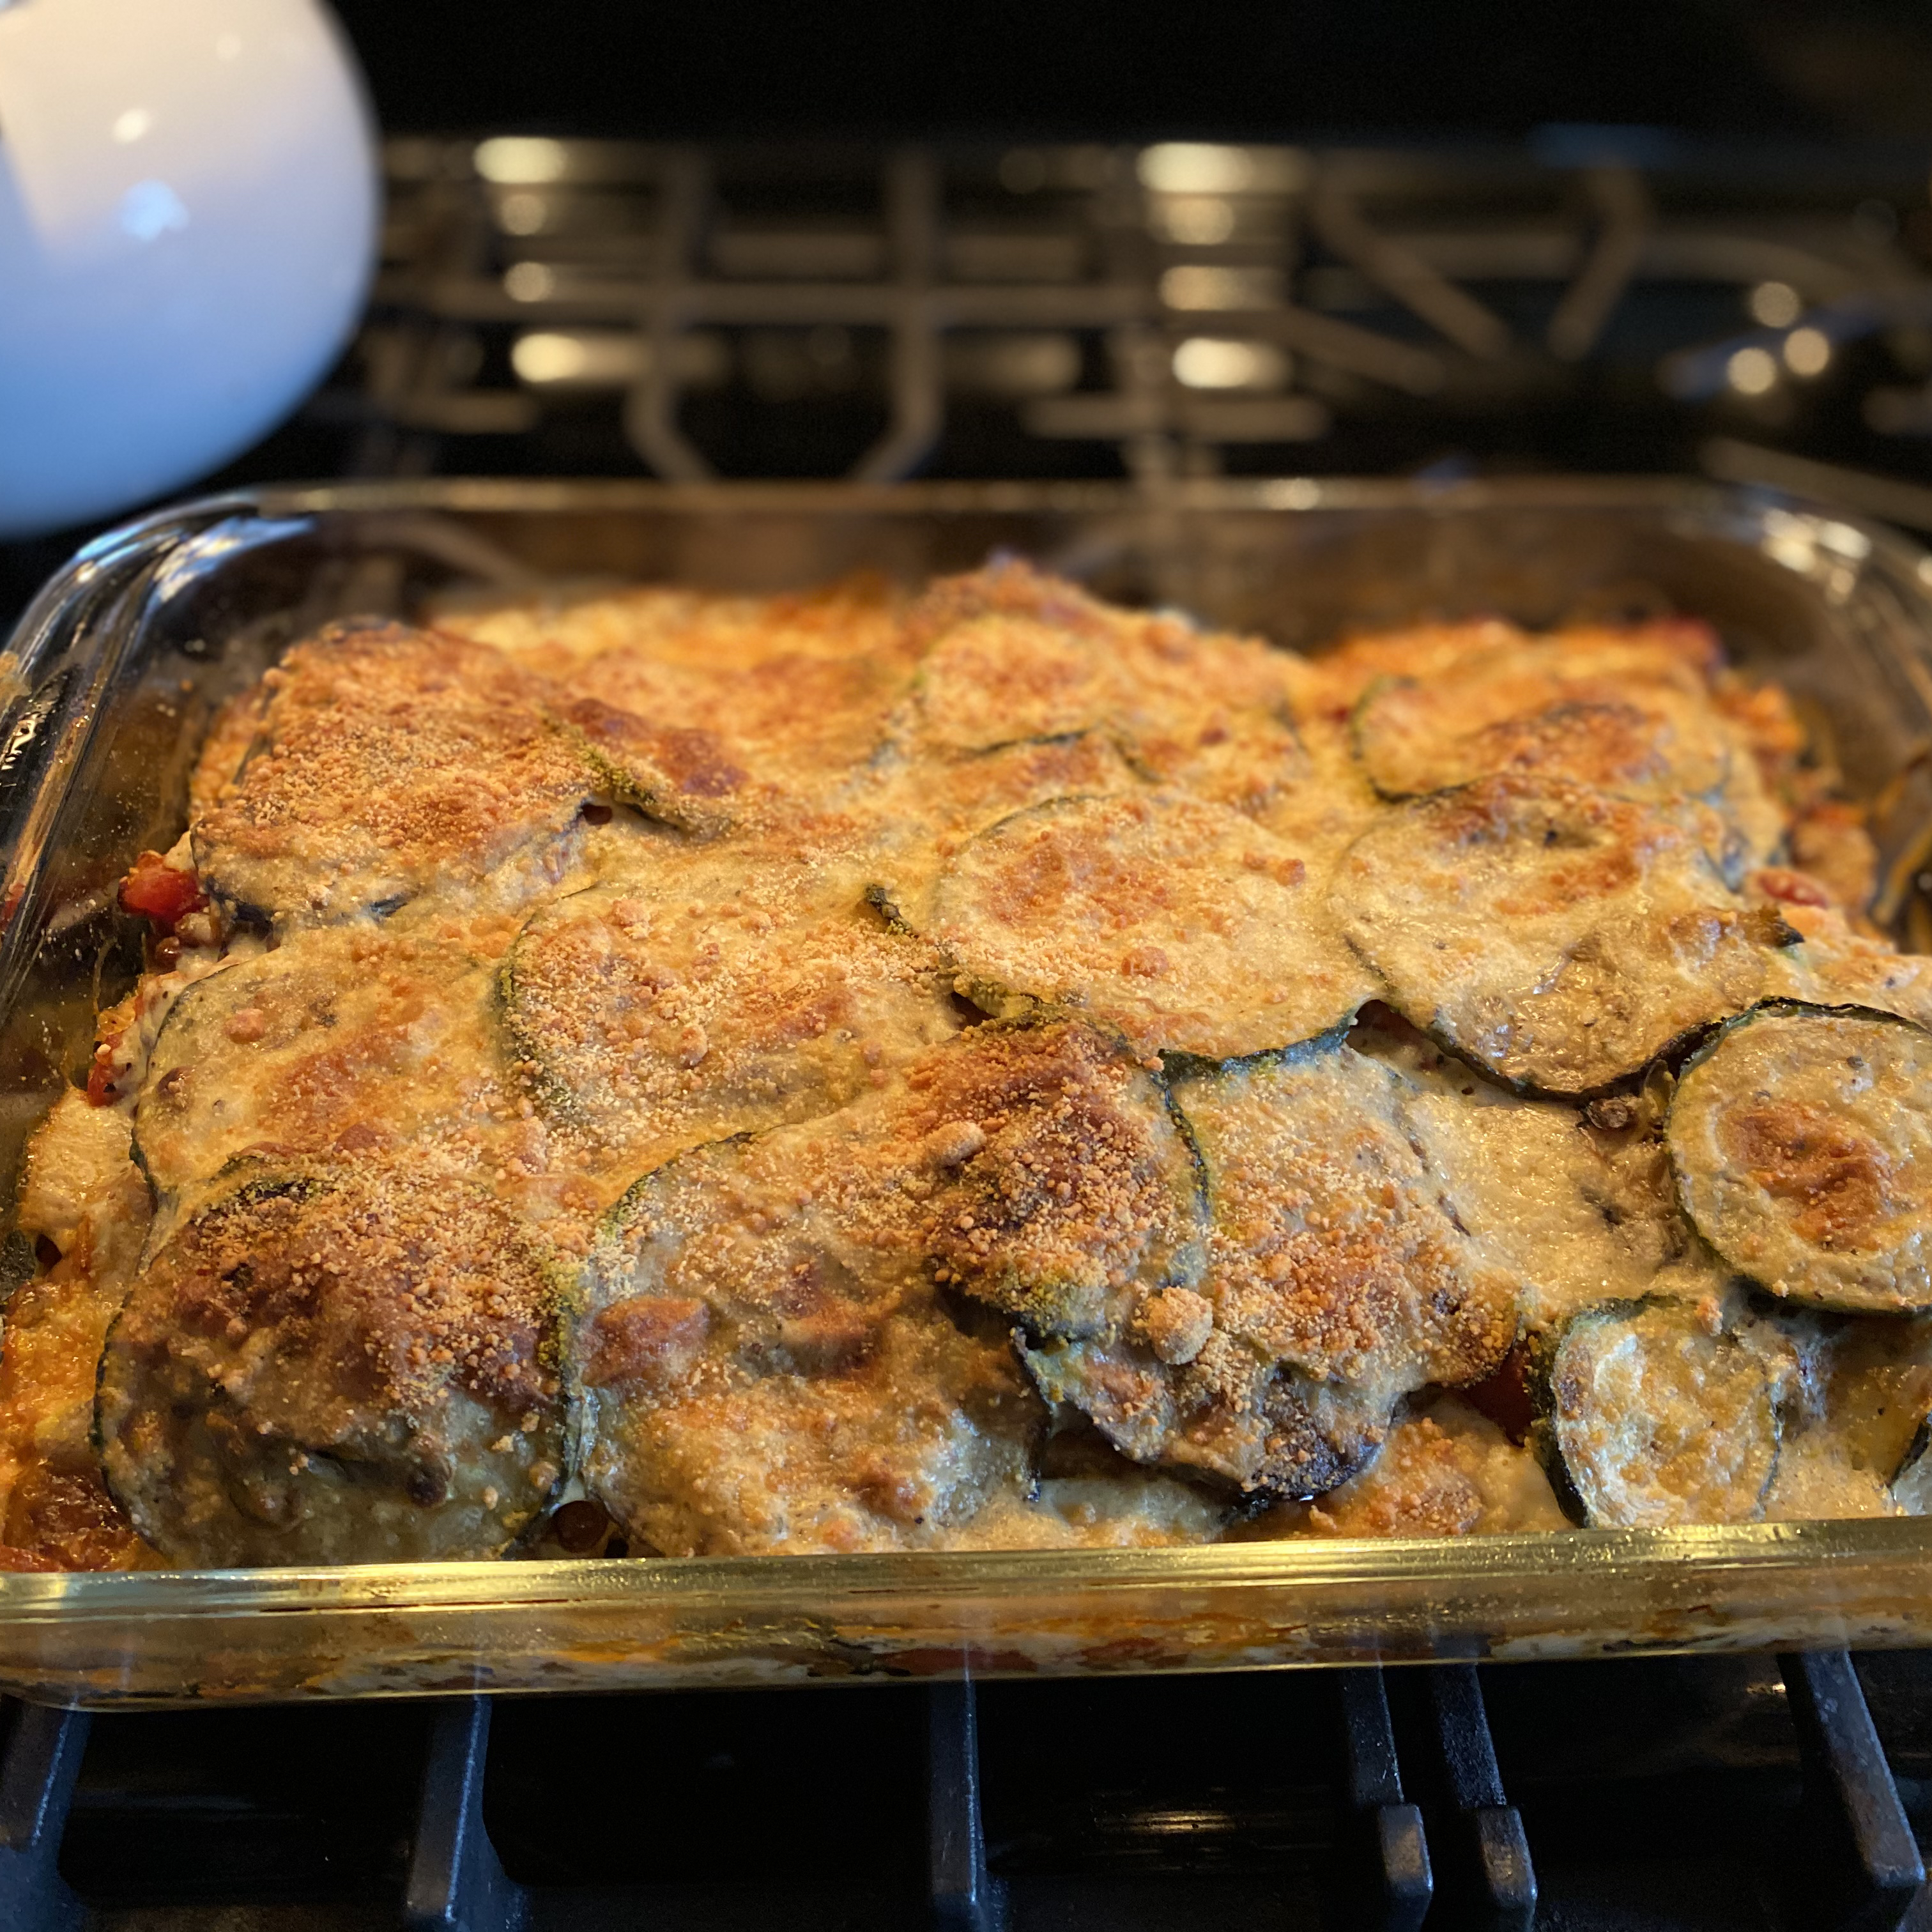 "Slices of eggplant, zucchini, potatoes and onion are layered with tomatoes and lentils and baked with a bechamel white sauce. ""Spectacular!"" raves MeatballMatt. ""Very good, easy to make. Everybody loved this, and it was filling. Will make again."""